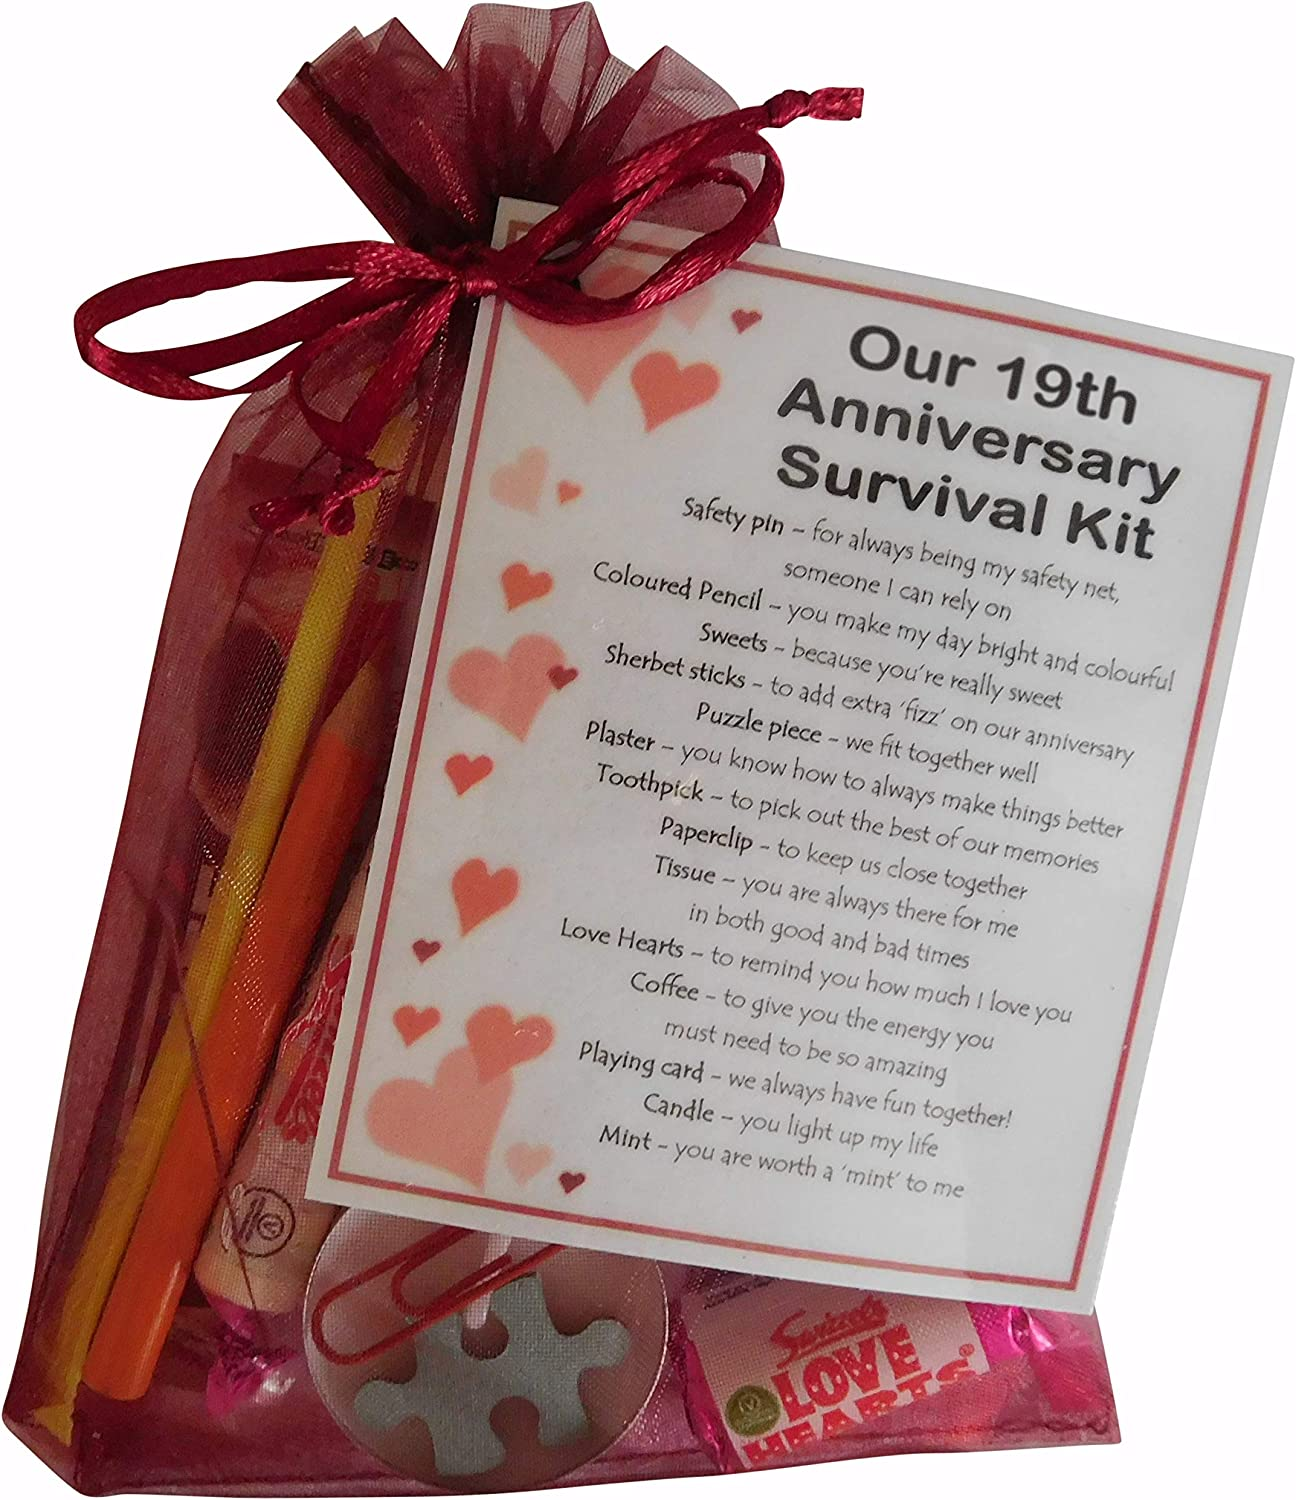 Great Novelty Present for Nineteenth Anniversary or Wedding Anniversary for Boyfriend, Girlfriend, Husband, Wife Smile Gifts UK 19th Anniversary Survival Kit Gift